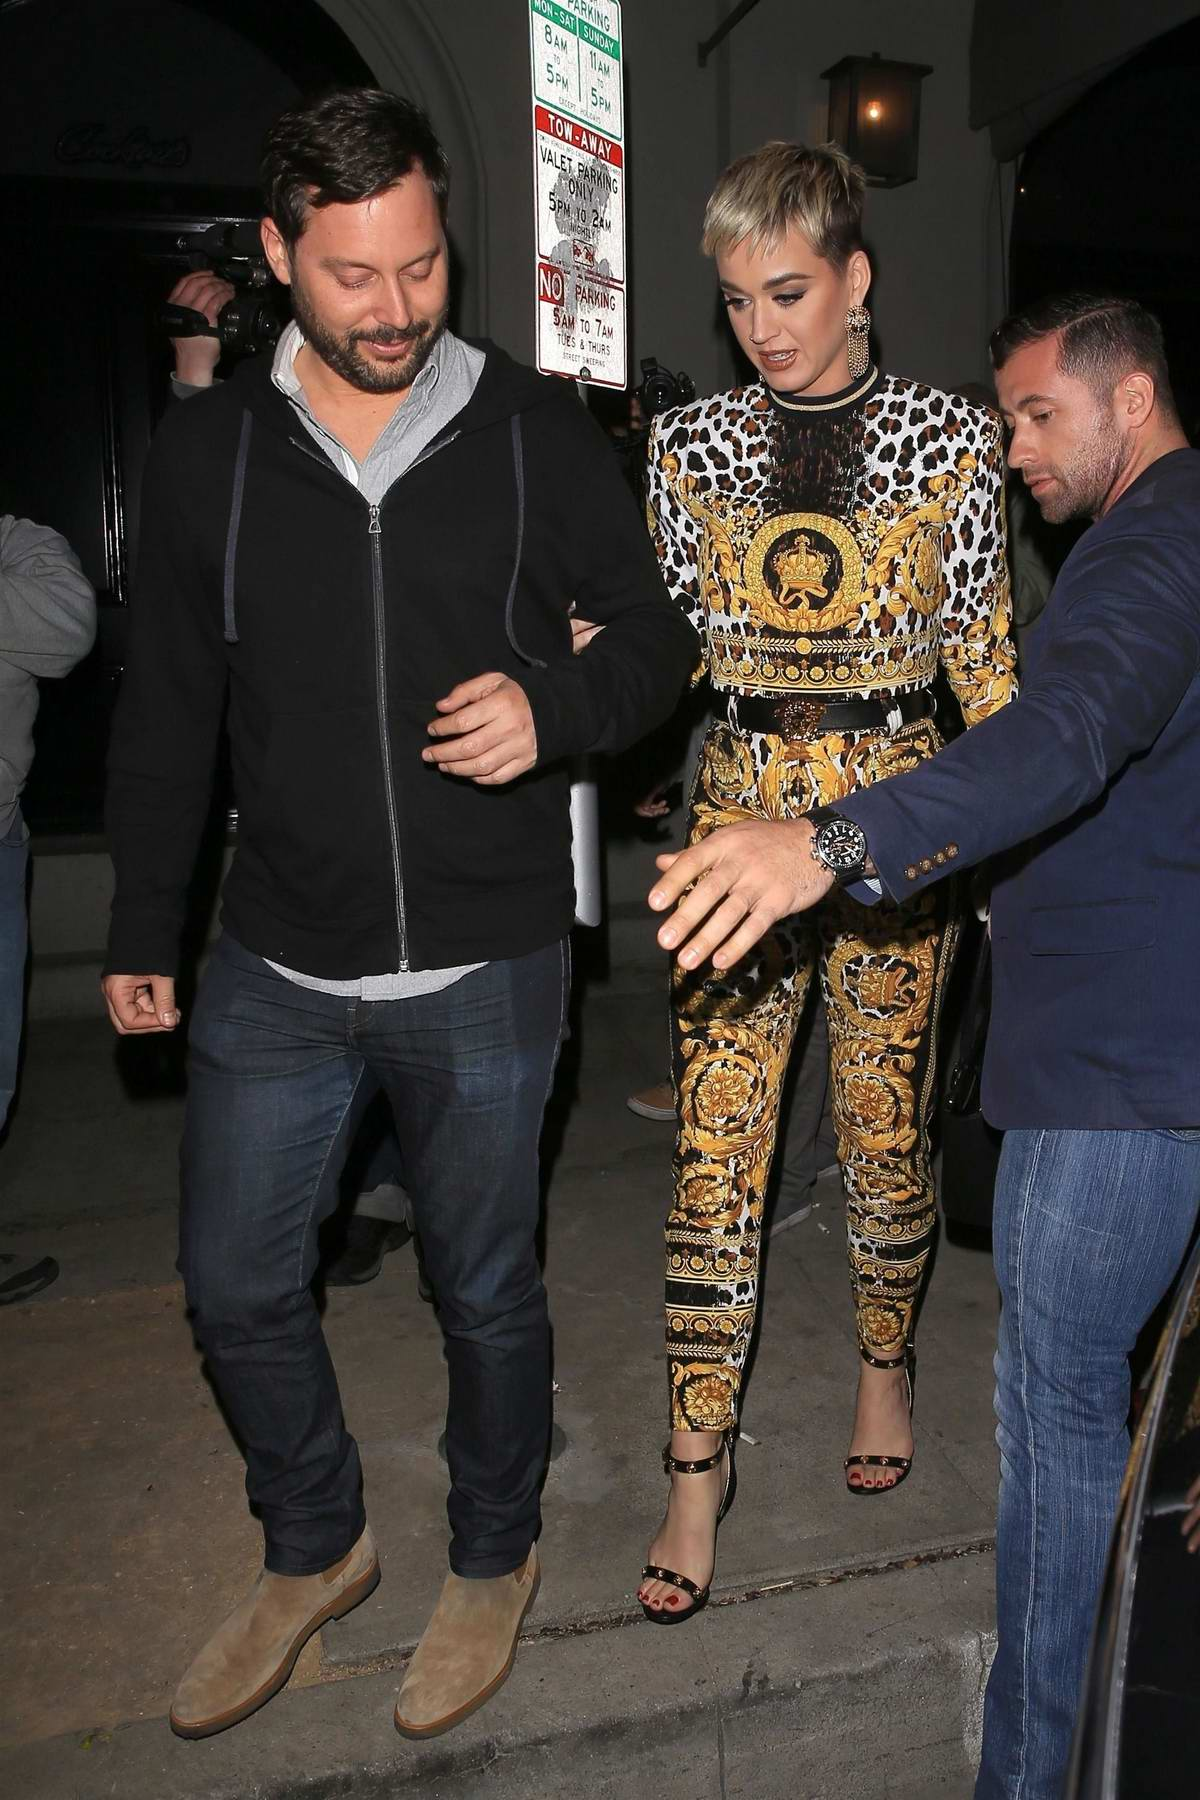 Katy Perry spotted as she leaves Craig's wearing bright yellow patterned outfit in West Hollywood, Los Angeles